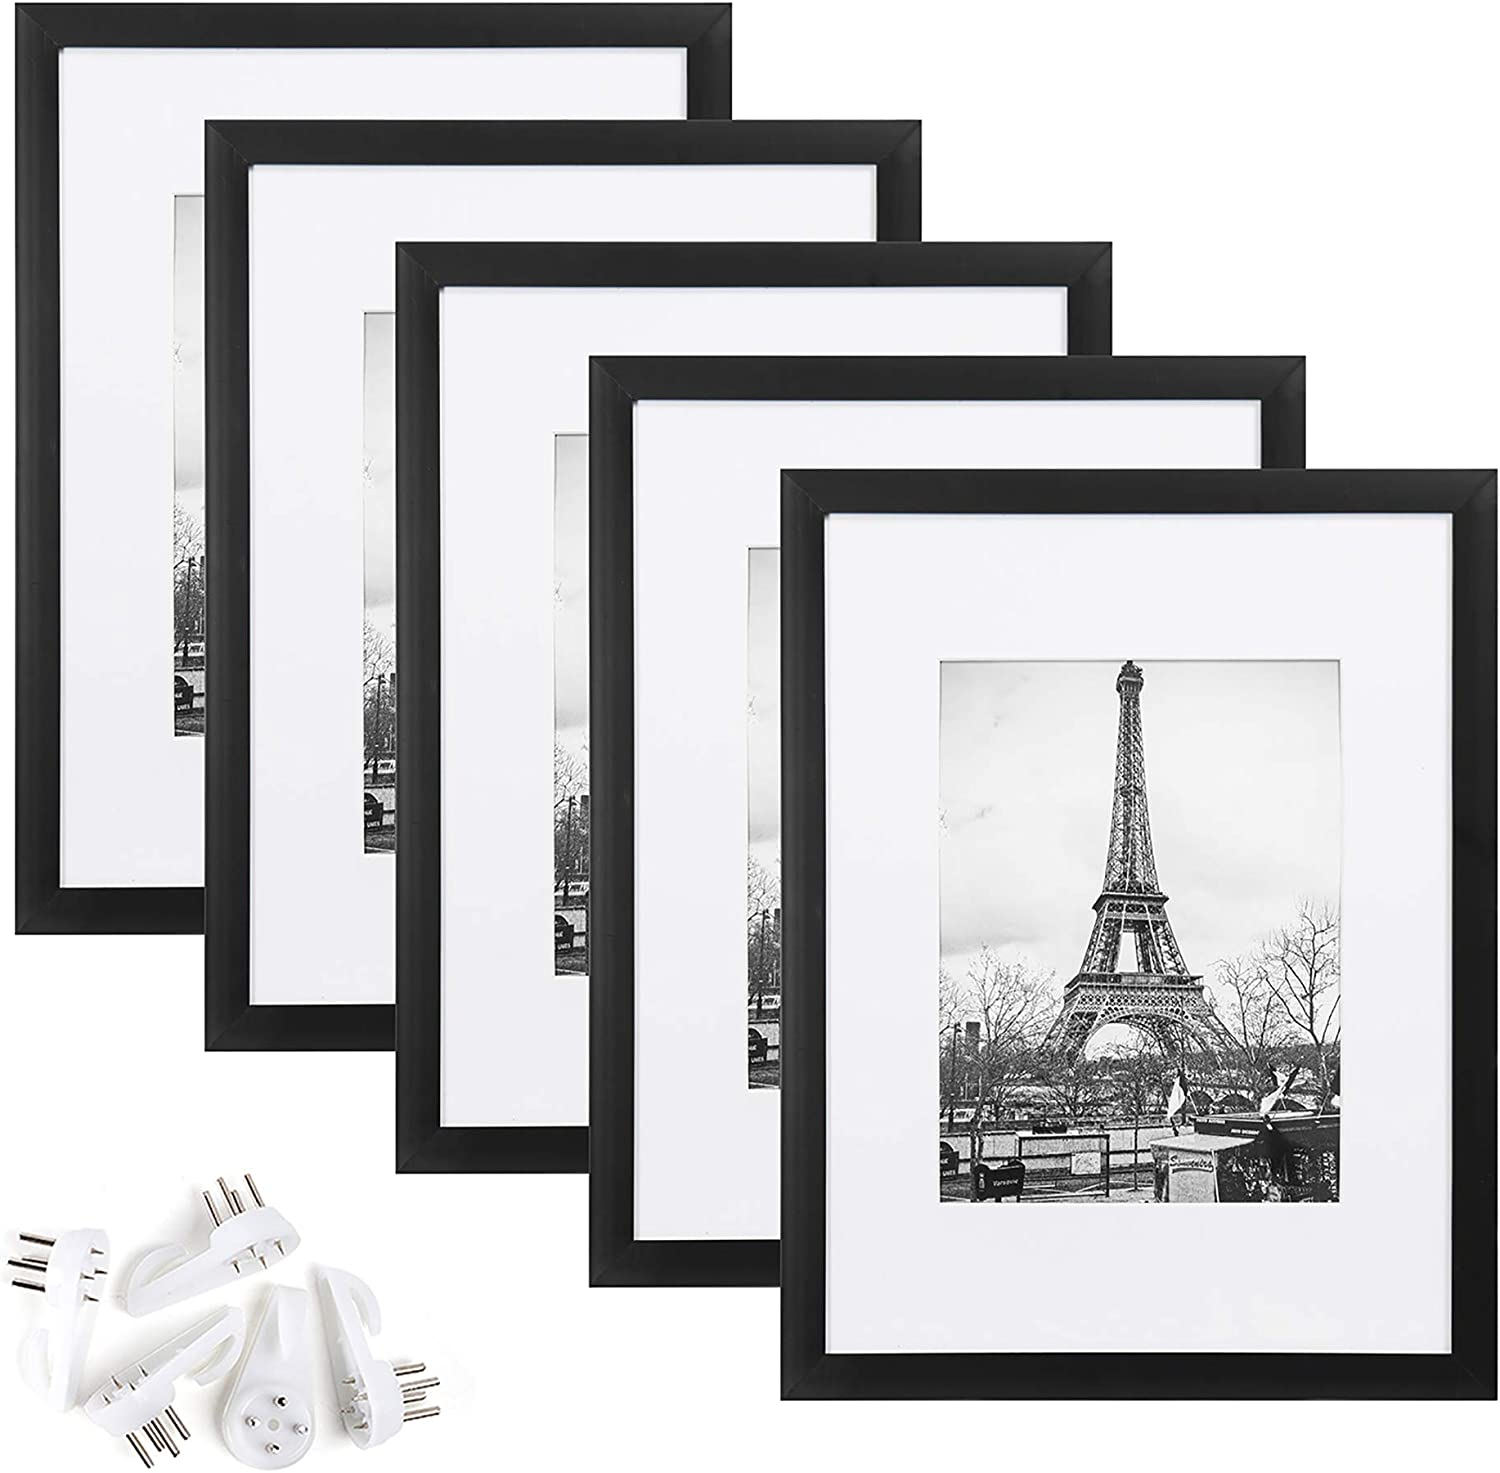 upsimples 9x12 Picture Frame Set of 5,Display Pictures 6x8 with Mat or 9x12 Without Mat,Wall Gallery Photo Frames,Black